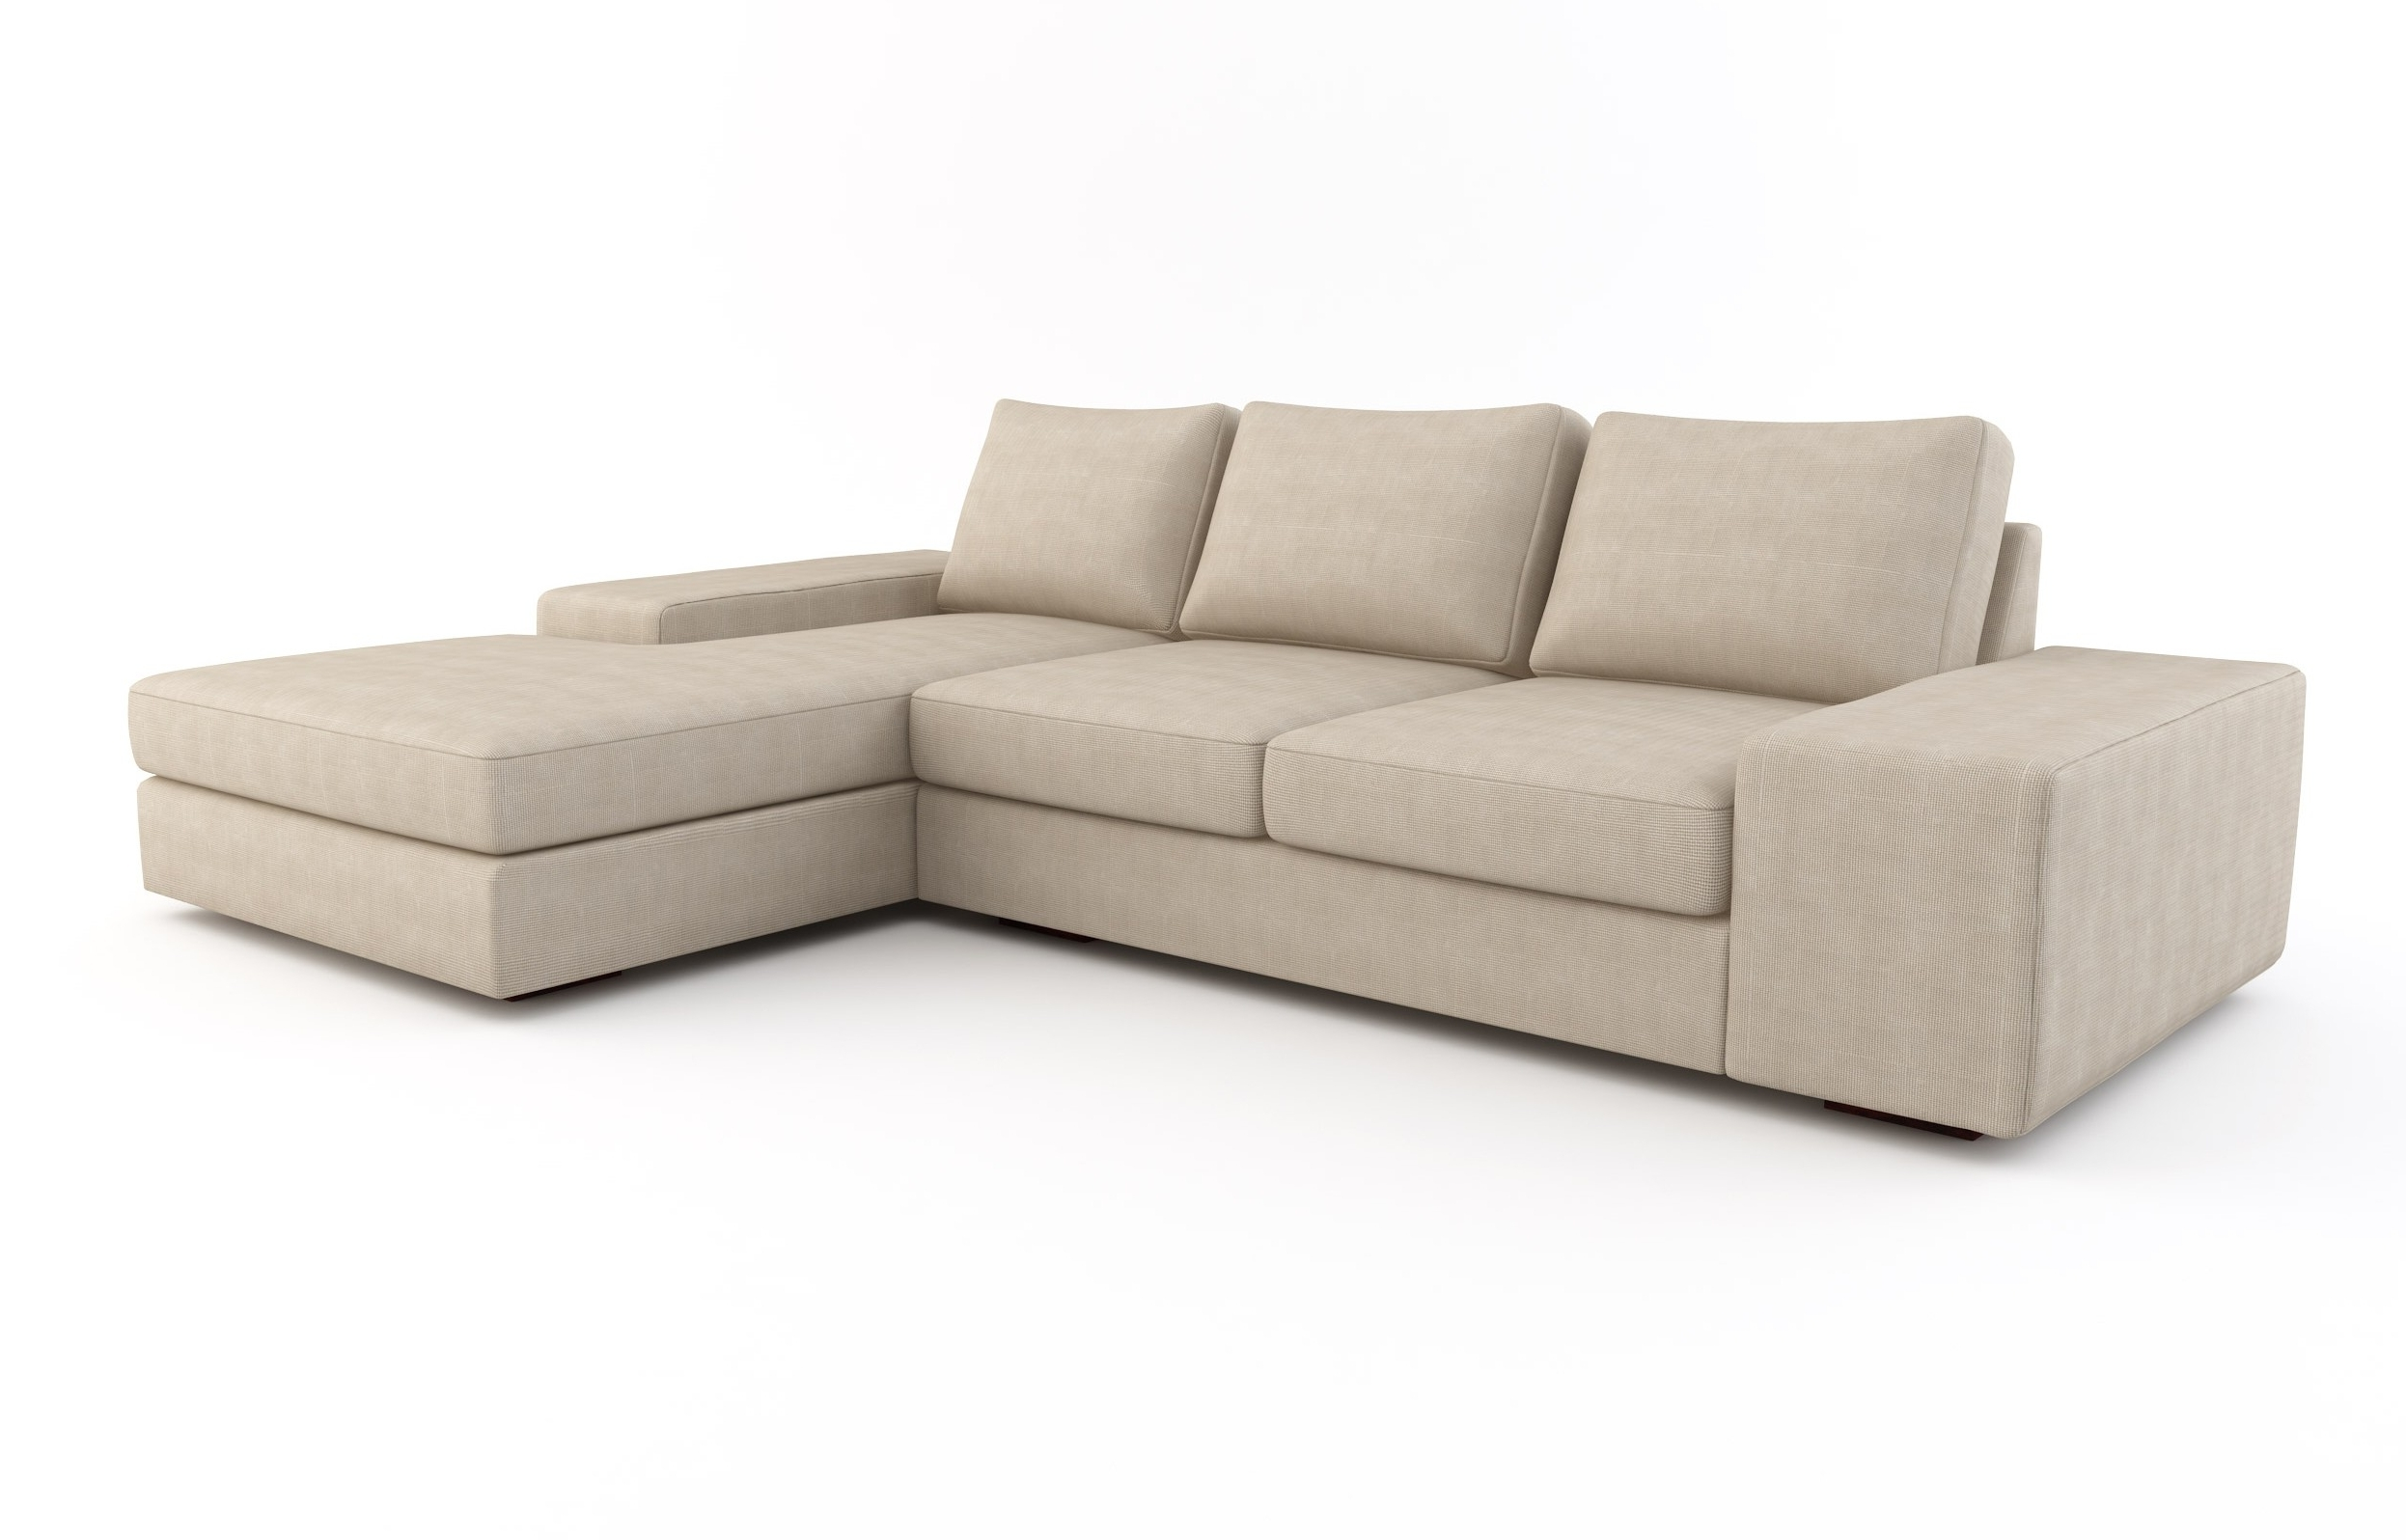 2018 Strata Chaise Sectional W/ Sofa Bed (View 15 of 15)